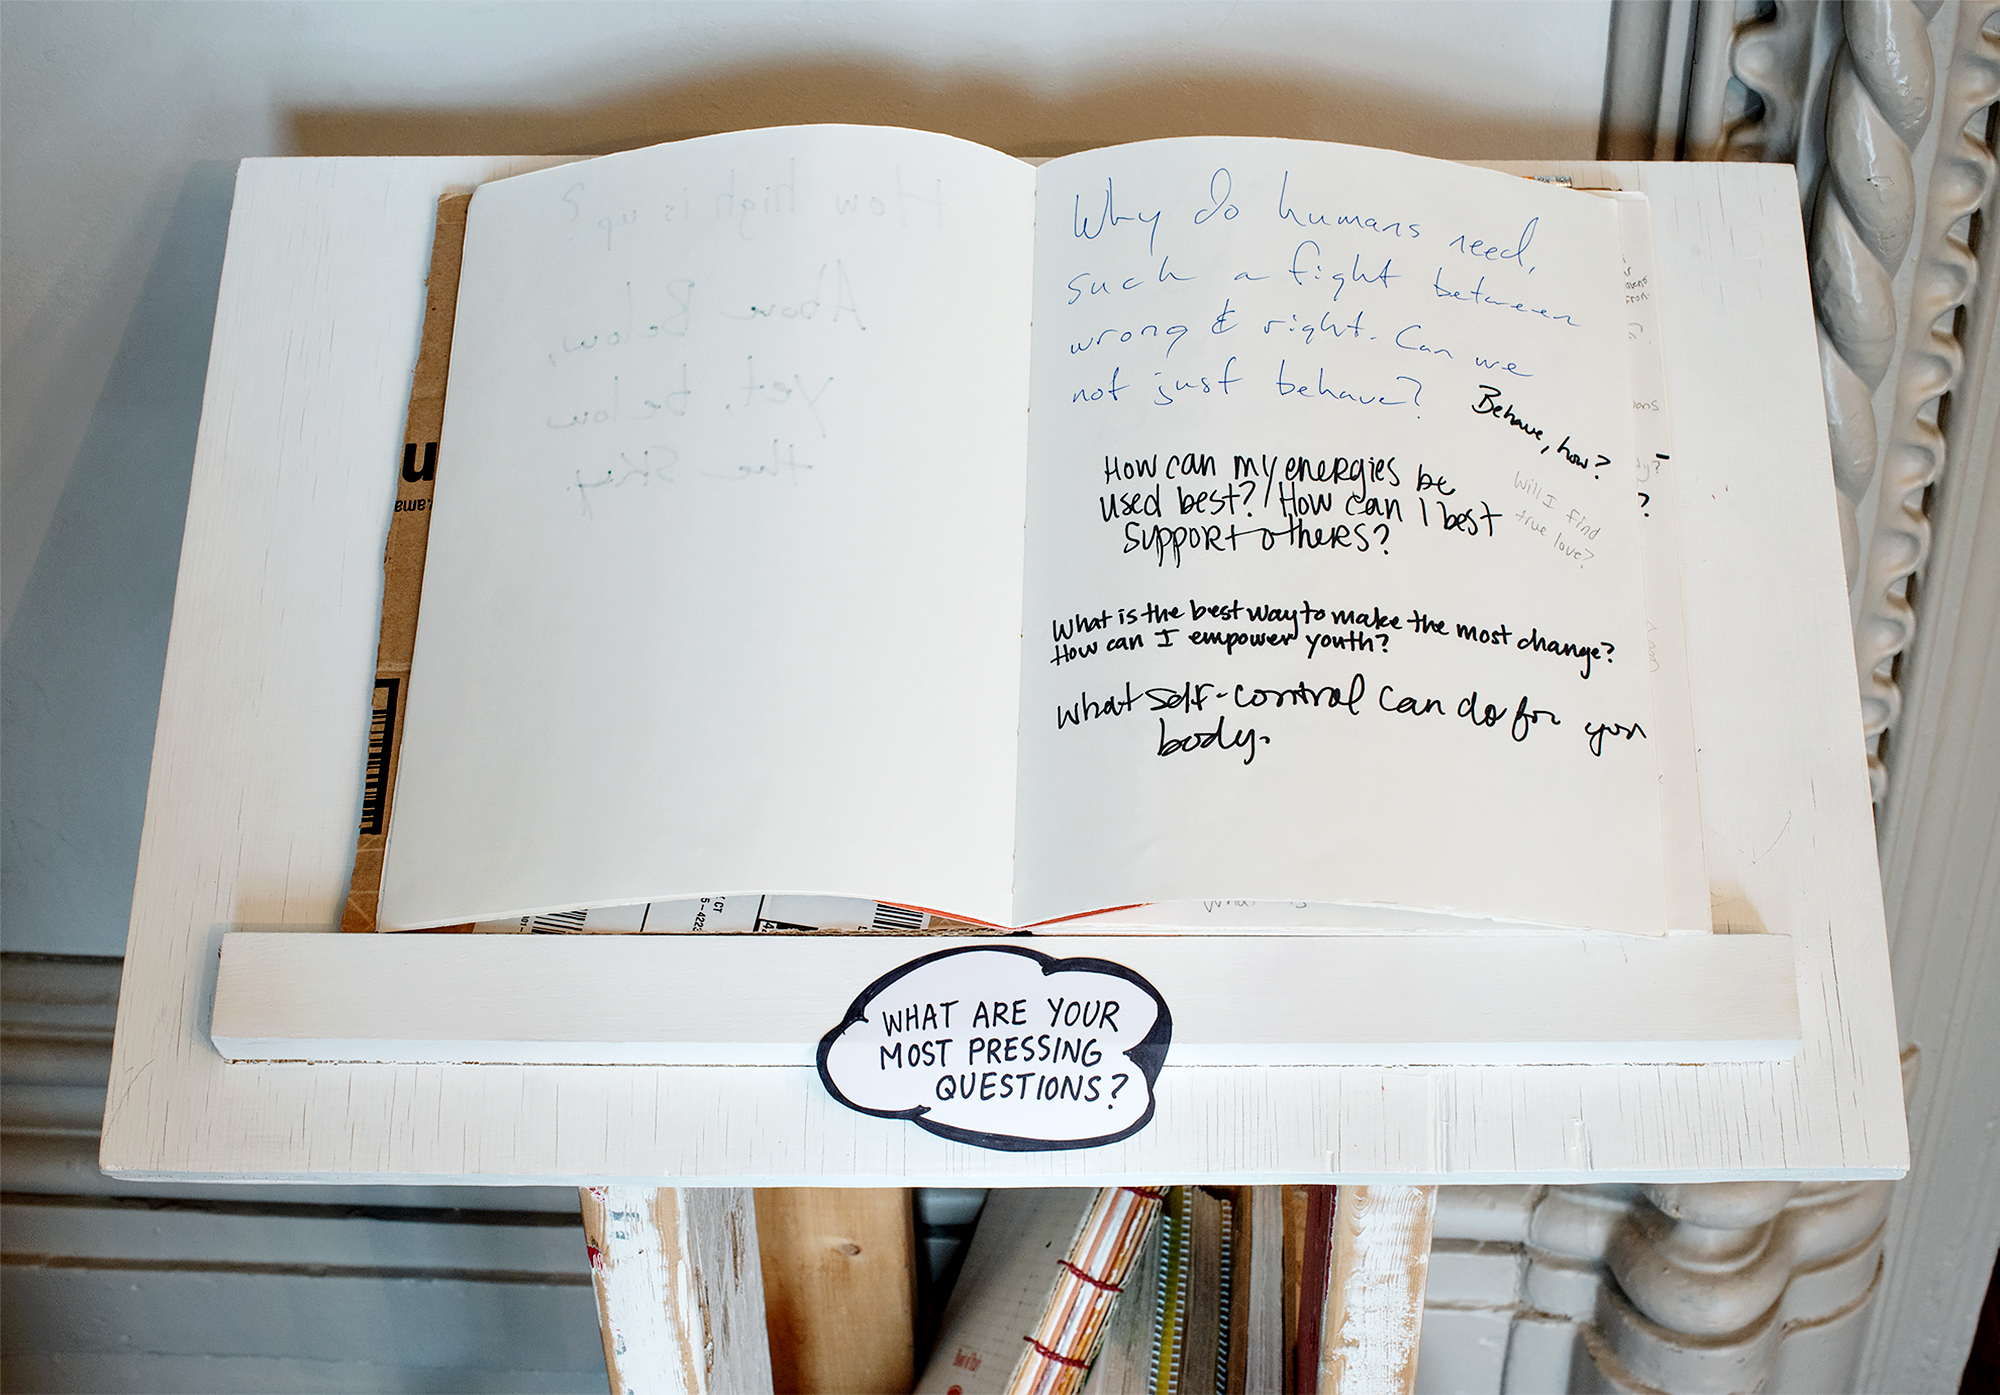 """Image: Detail view of a book and prompt set on one of the mobile pedestals in the Everything on Wheels series, placed in one of the downstairs rooms at Hull-House. The prompt says """"what are your most pressing questions?"""", and people have written answers such as """"How can my energies be used best? How can I best support others?"""", or """"What is the best way to make the most change? How can I empower youth?"""" Photo by Greg Ruffing."""